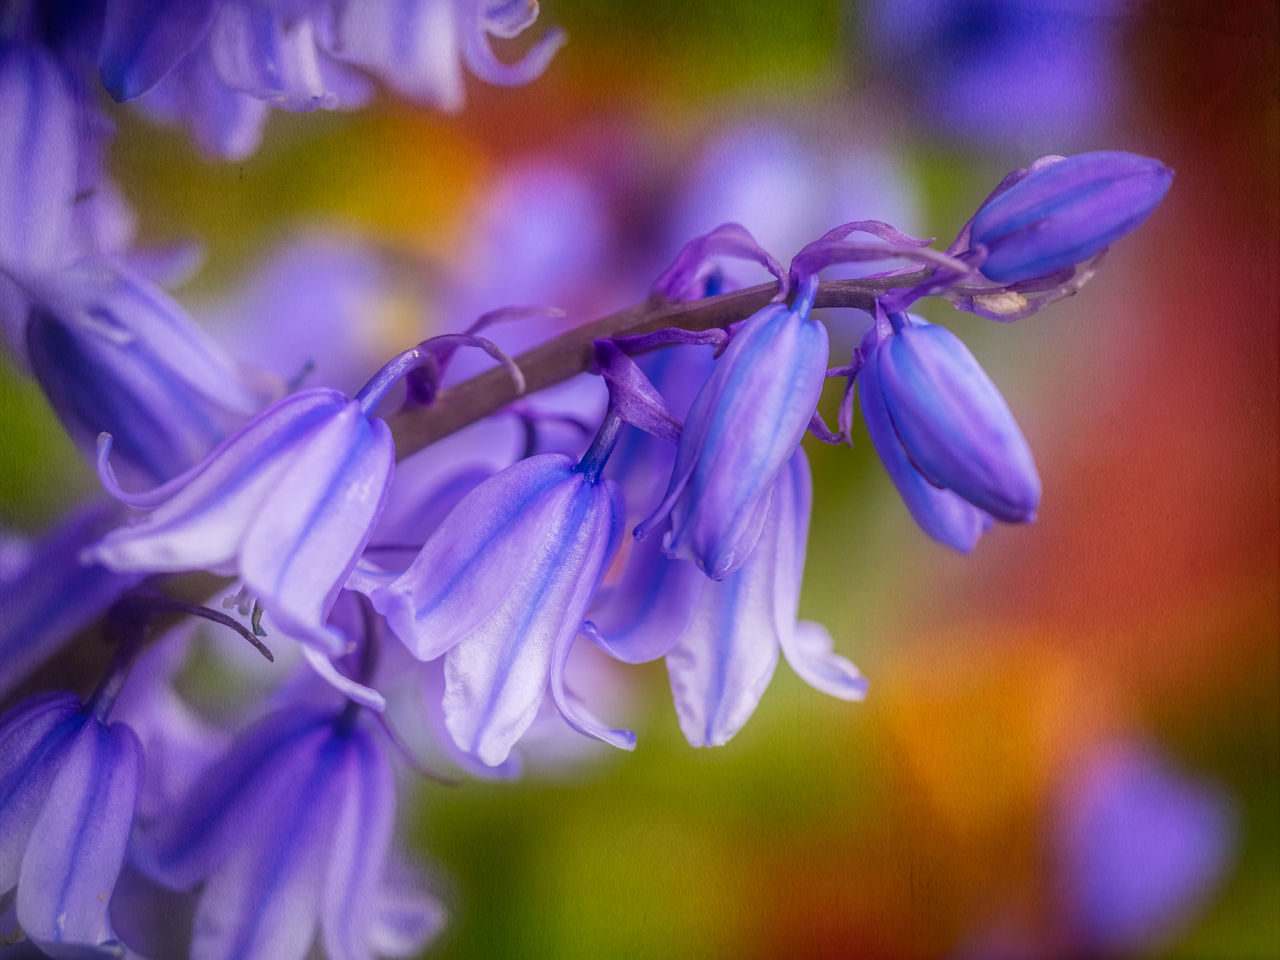 flowering plant, flower, plant, beauty in nature, petal, vulnerability, freshness, fragility, purple, growth, close-up, focus on foreground, inflorescence, flower head, no people, selective focus, nature, day, botany, outdoors